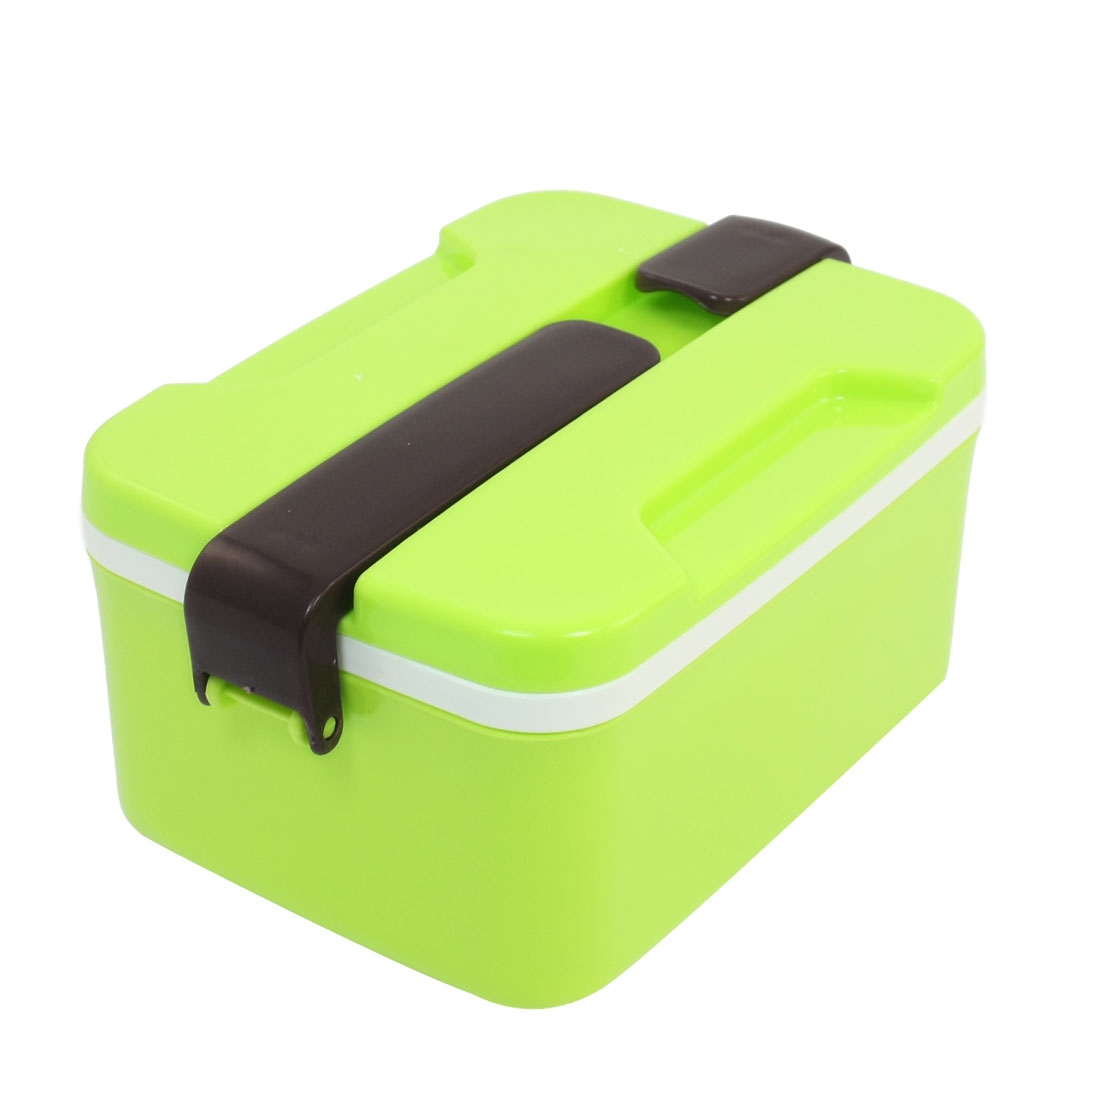 Yellow Green Plastic Rectangle Shaped Food Holder Picnic Lunch Box w Spoon